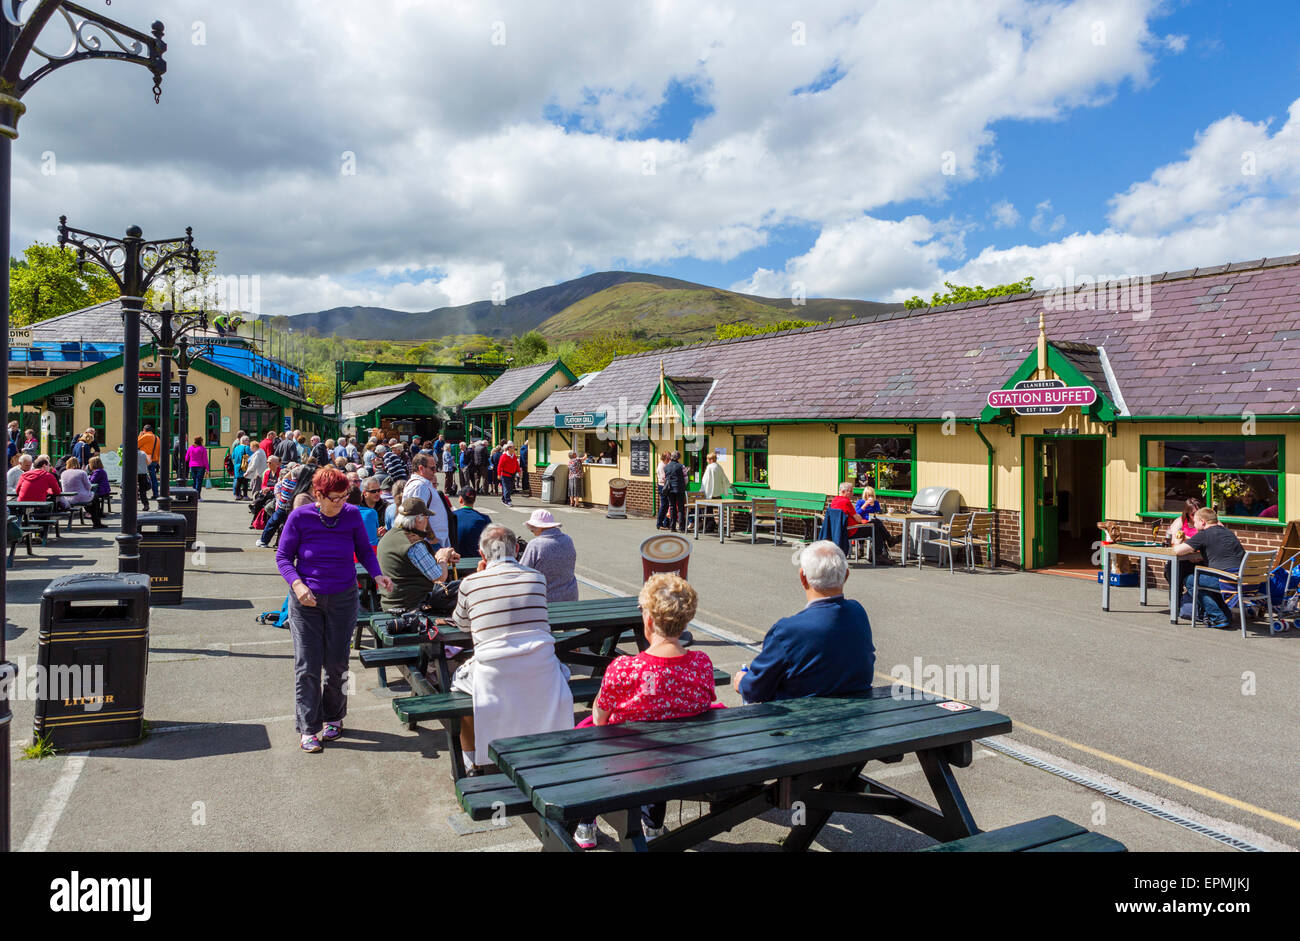 The station for the Snowdon Mountain Railway in Llanberis, Snowdonia, Gwynedd, Wales, UK - Stock Image